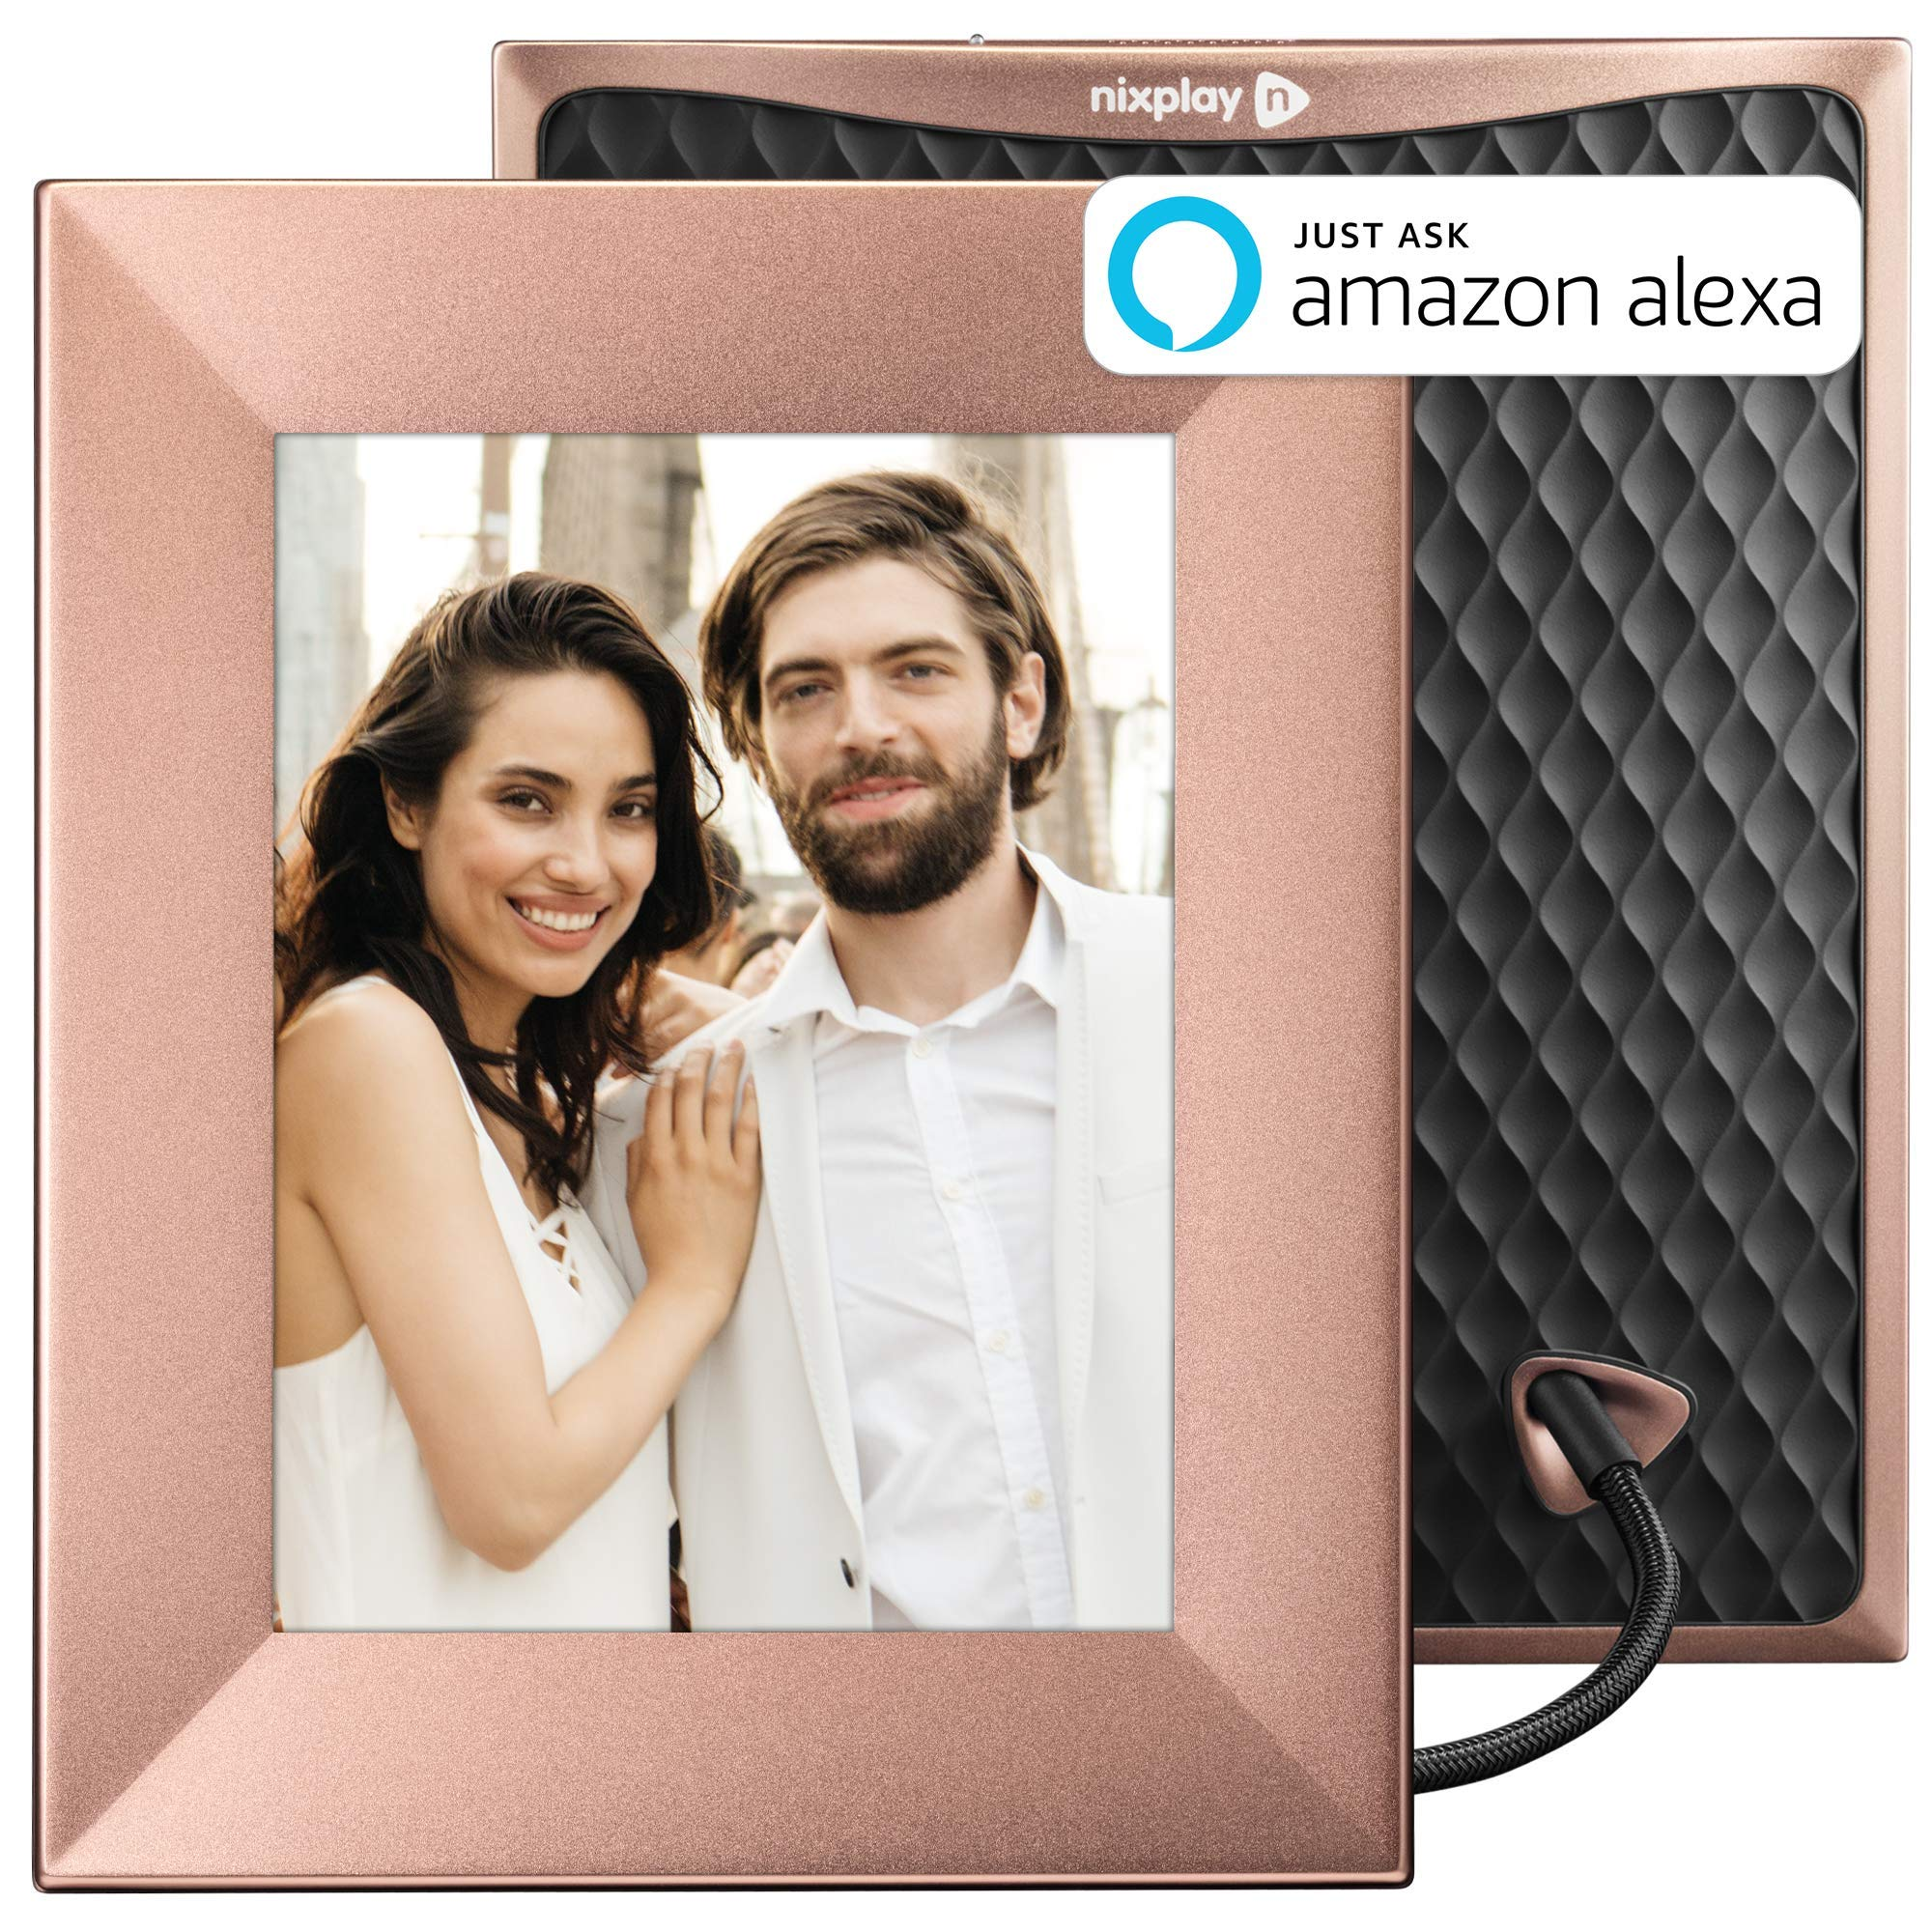 Nixplay Iris 8 Inch Digital WiFi Photo Frame W08E Peach Copper - Smart Frame with IPS Display, Motion Sensor and 10GB Online Storage, Display and Share Photos with Friends via Nixplay Mobile App by nixplay